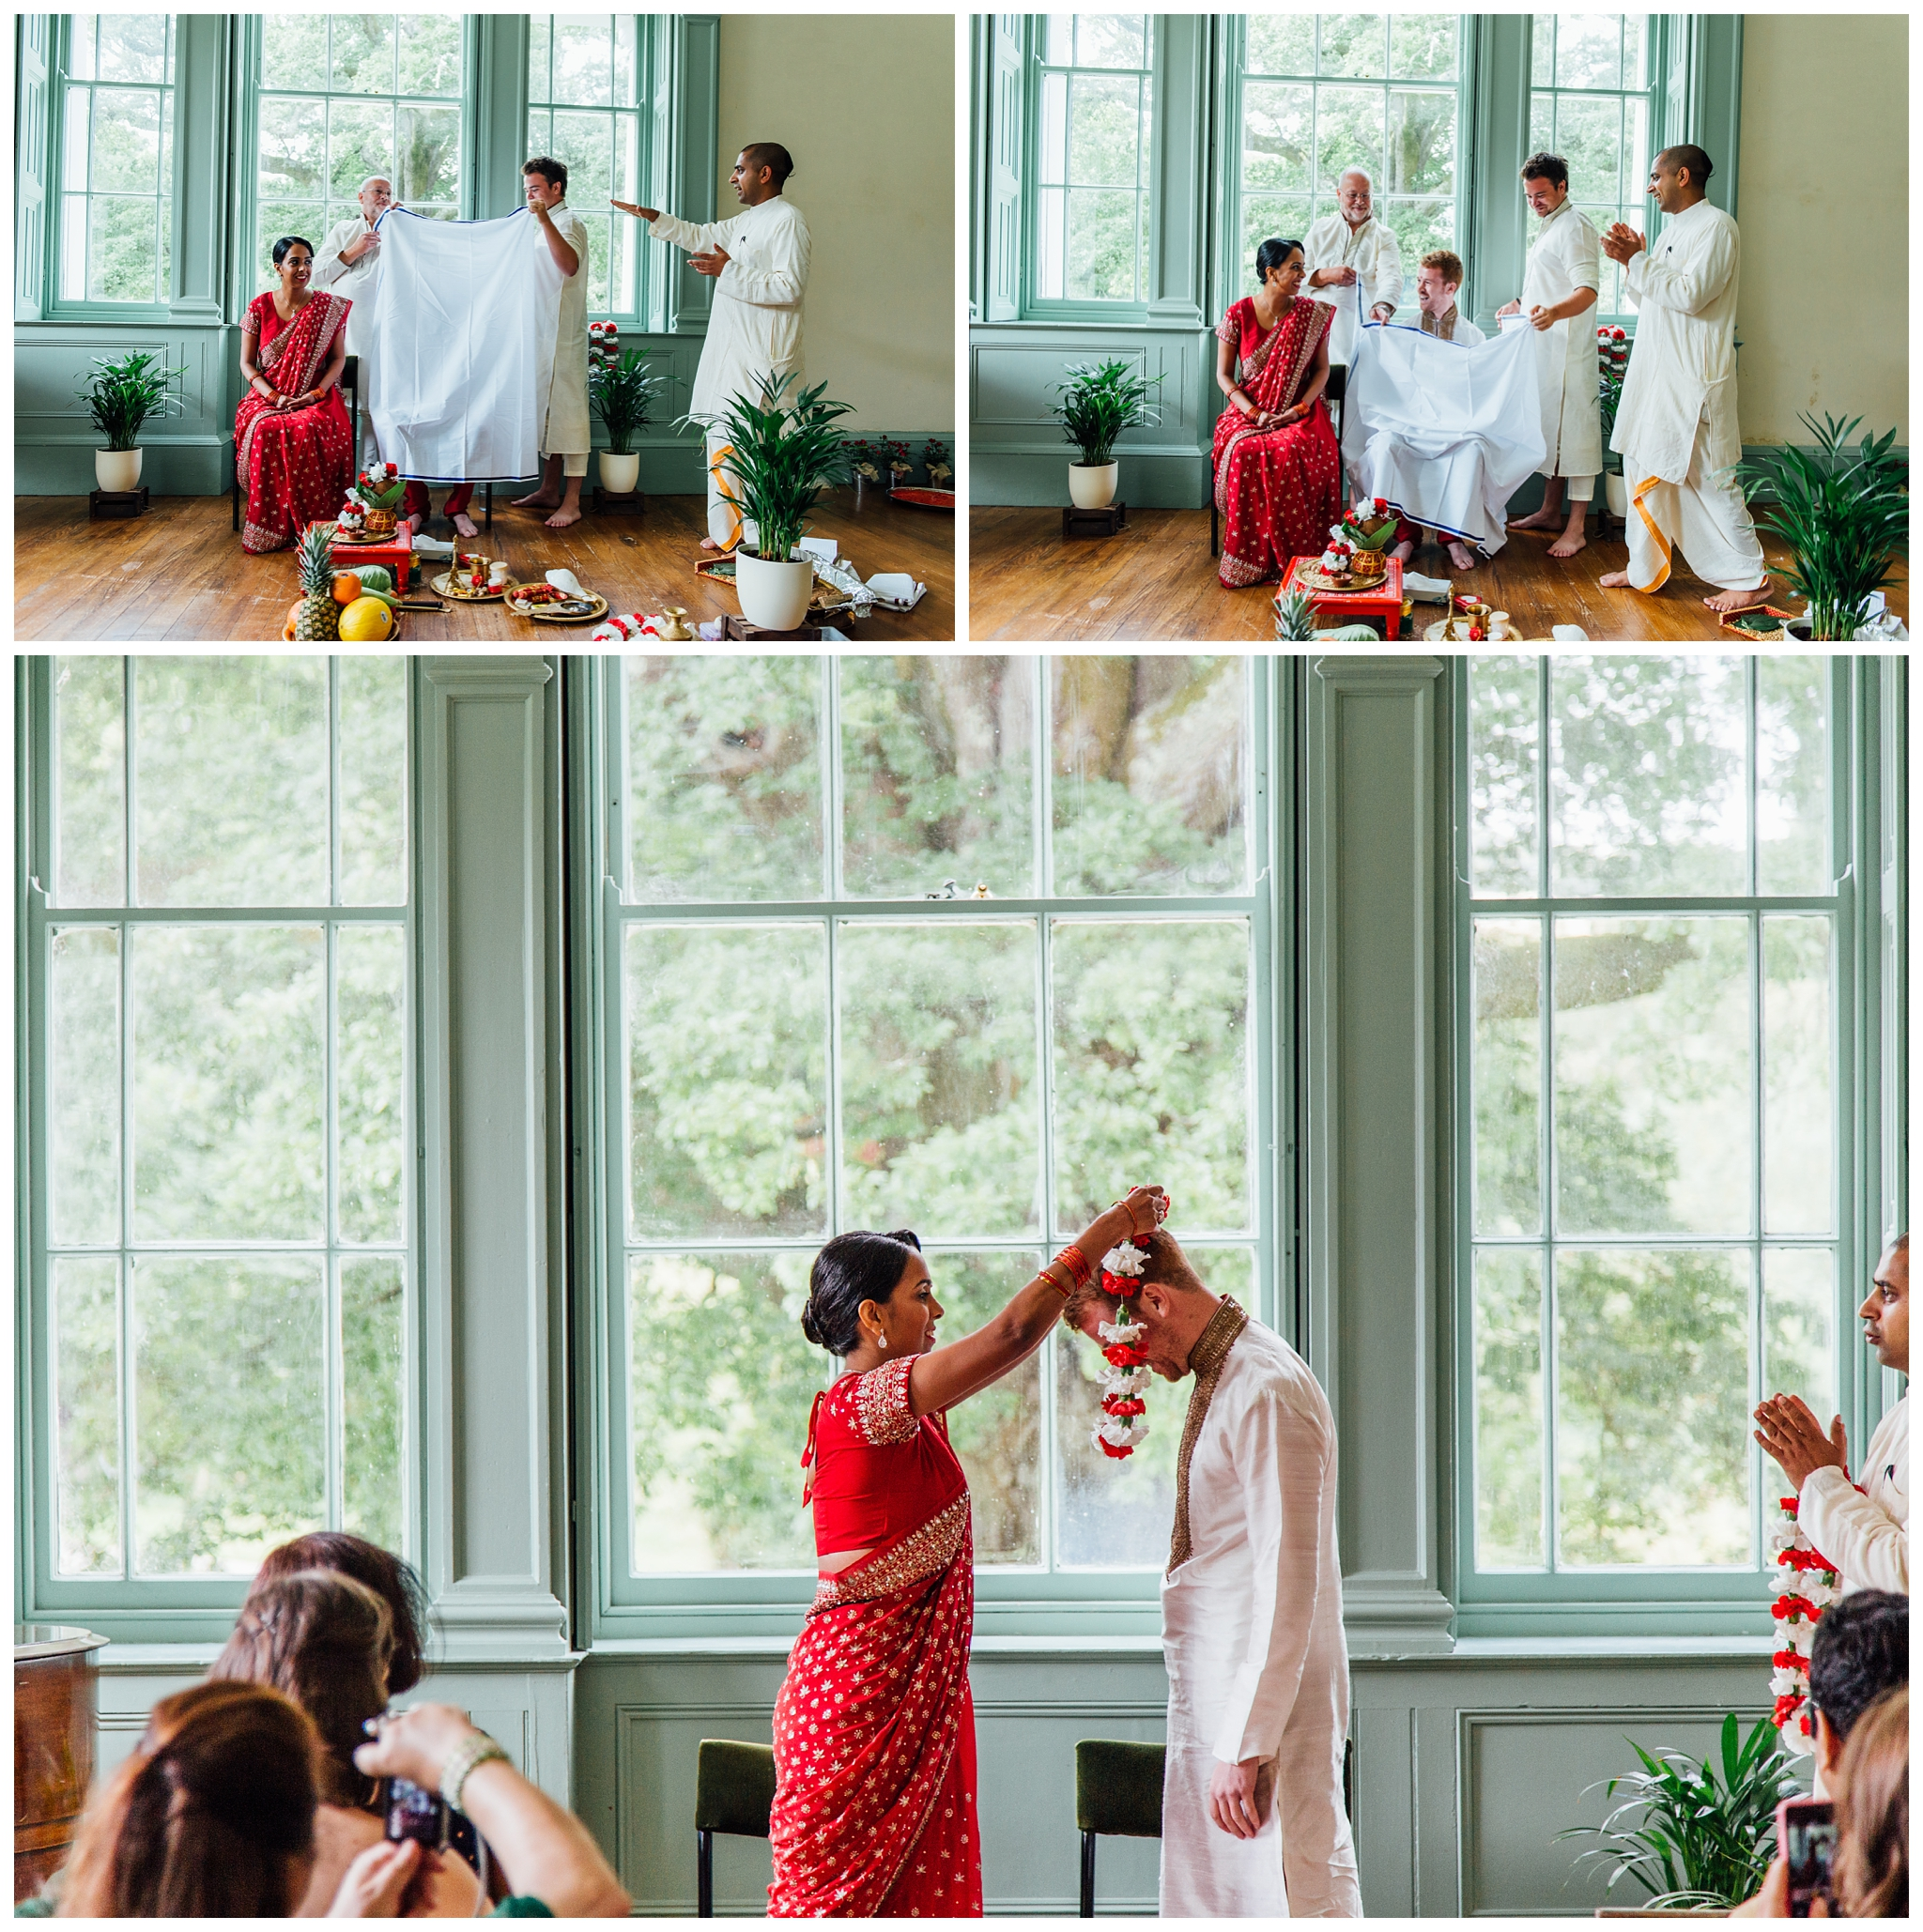 Rich&Dhikshana_Lupton_House_Devon_Hindu_English_Fushion_Wedding_0006.jpg